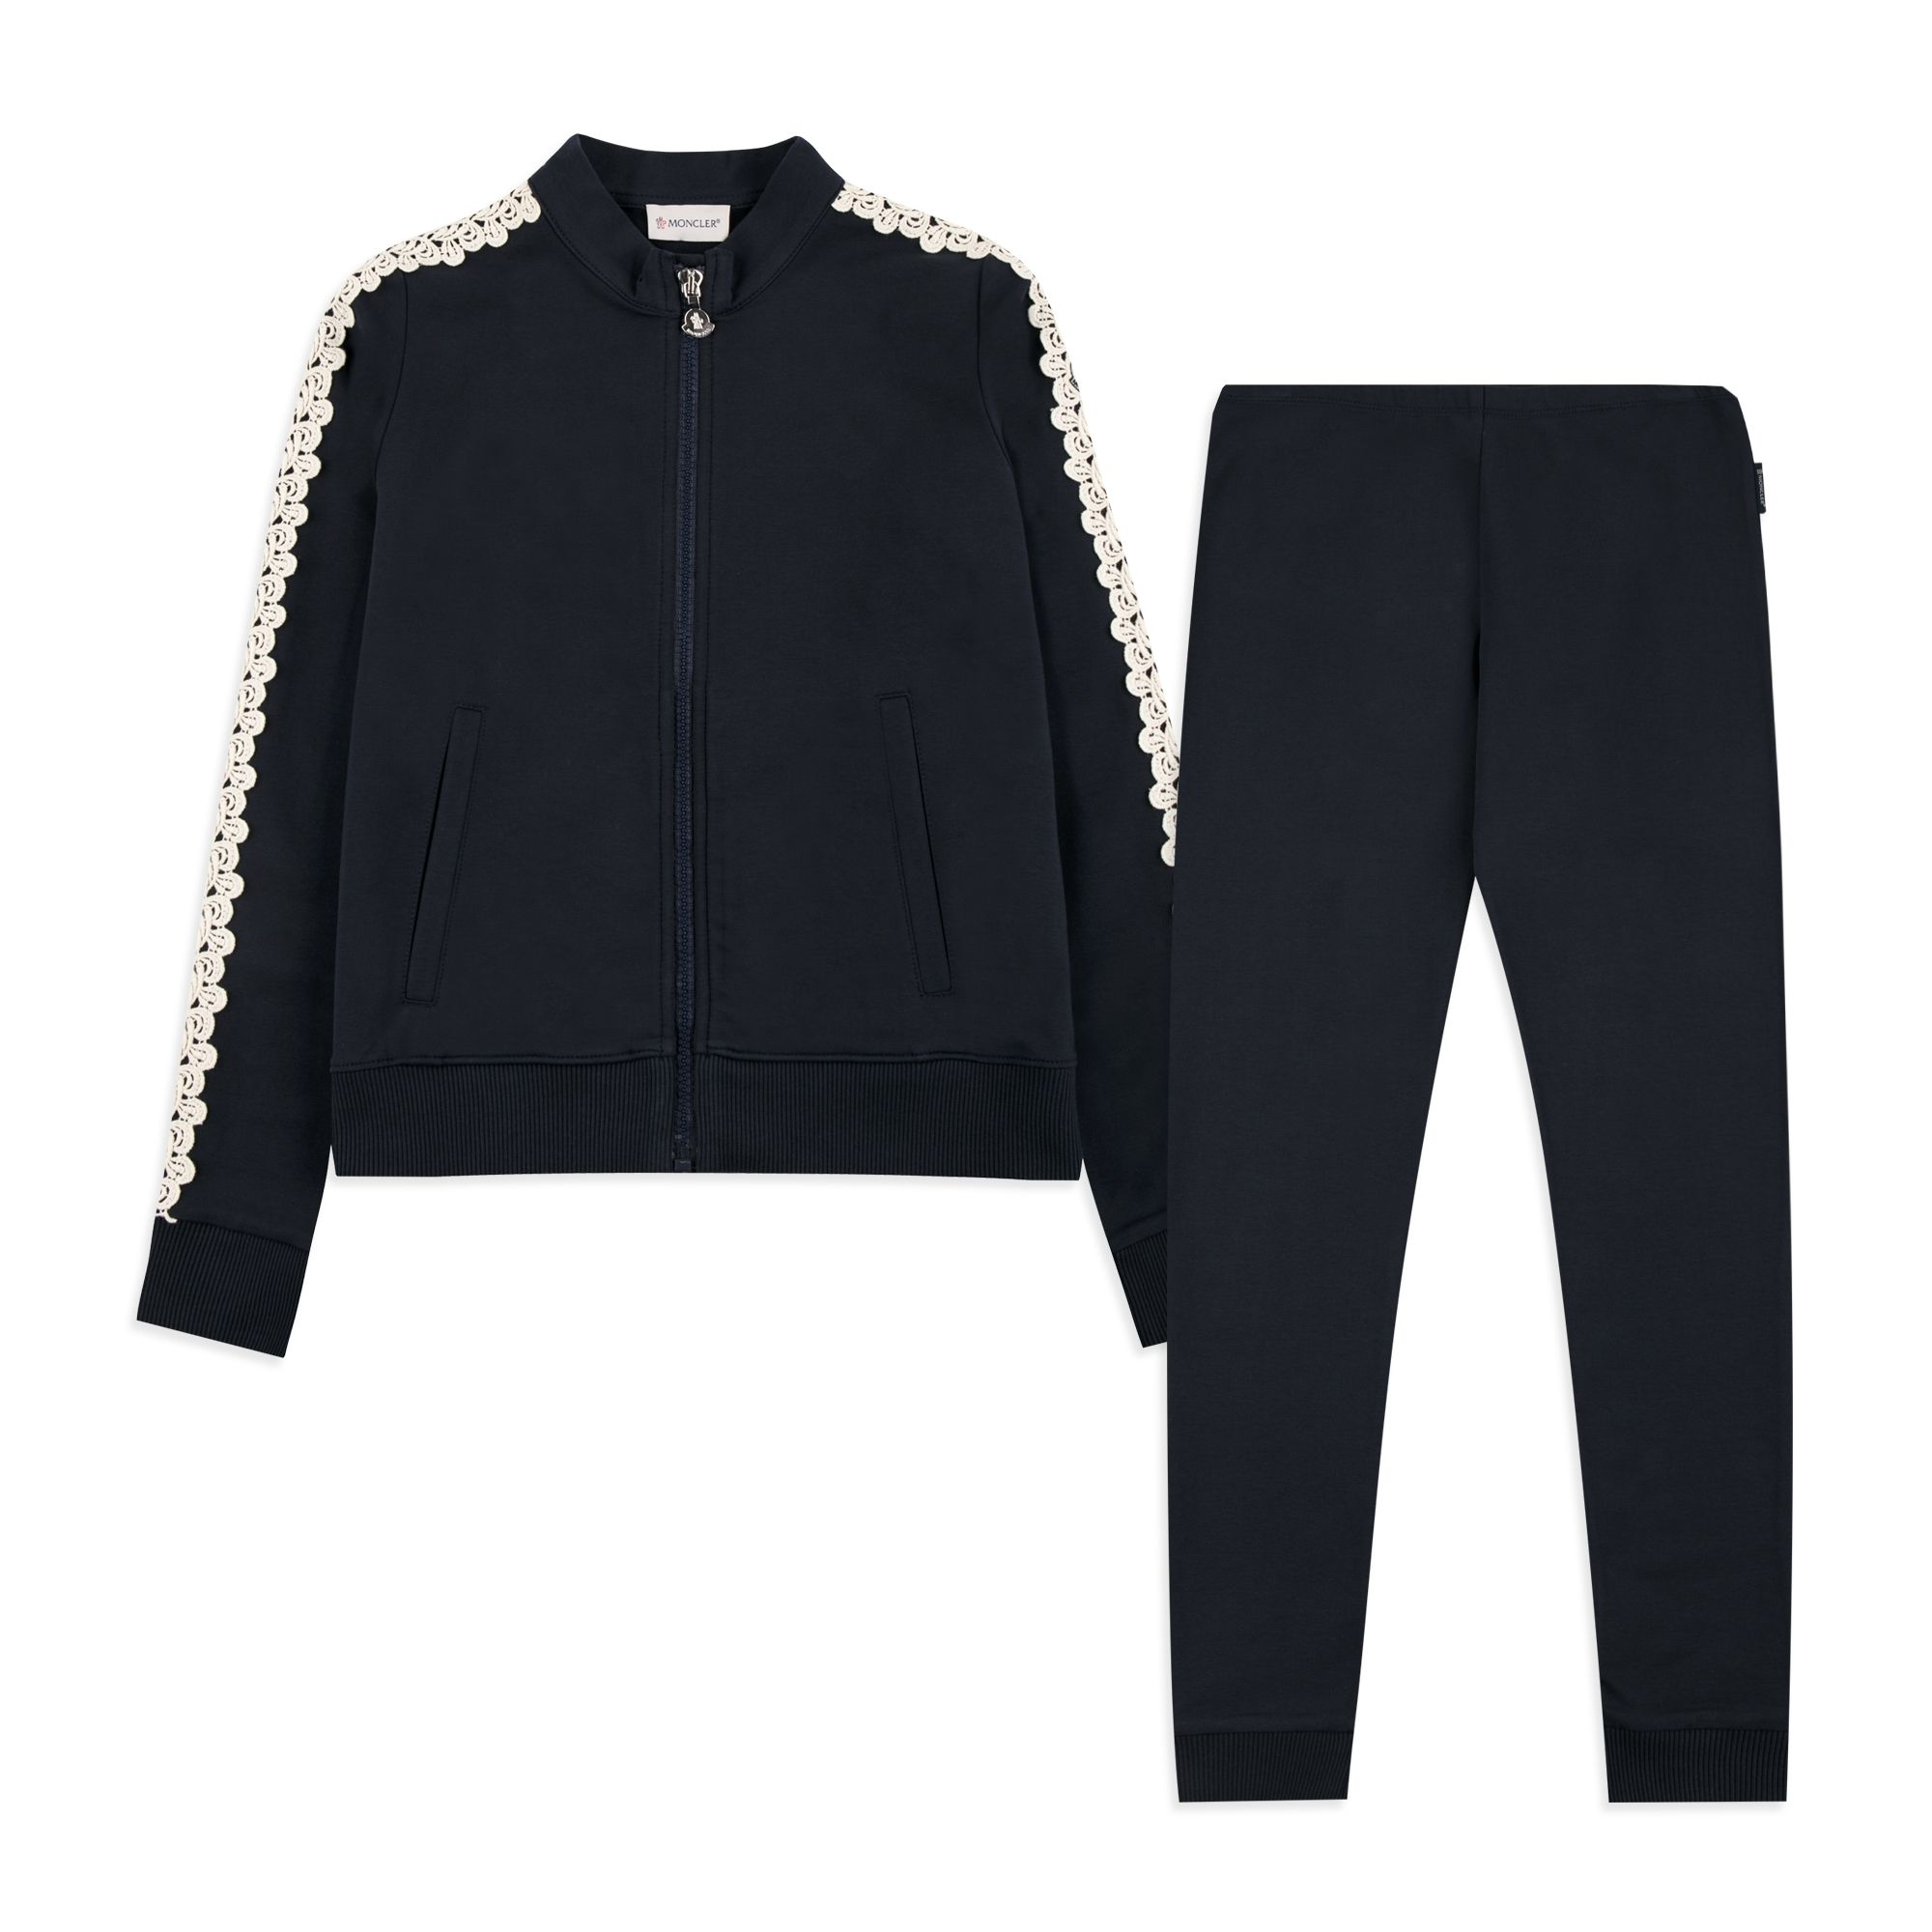 MONCLER Girls Lace Trim Tracksuit - Navy Girls jersey tracksuit • Soft  stretchy cotton • Full zip sweatshirt • Ribbed cuffs and hem • Two front  pockets ... bf7b76cf4be0